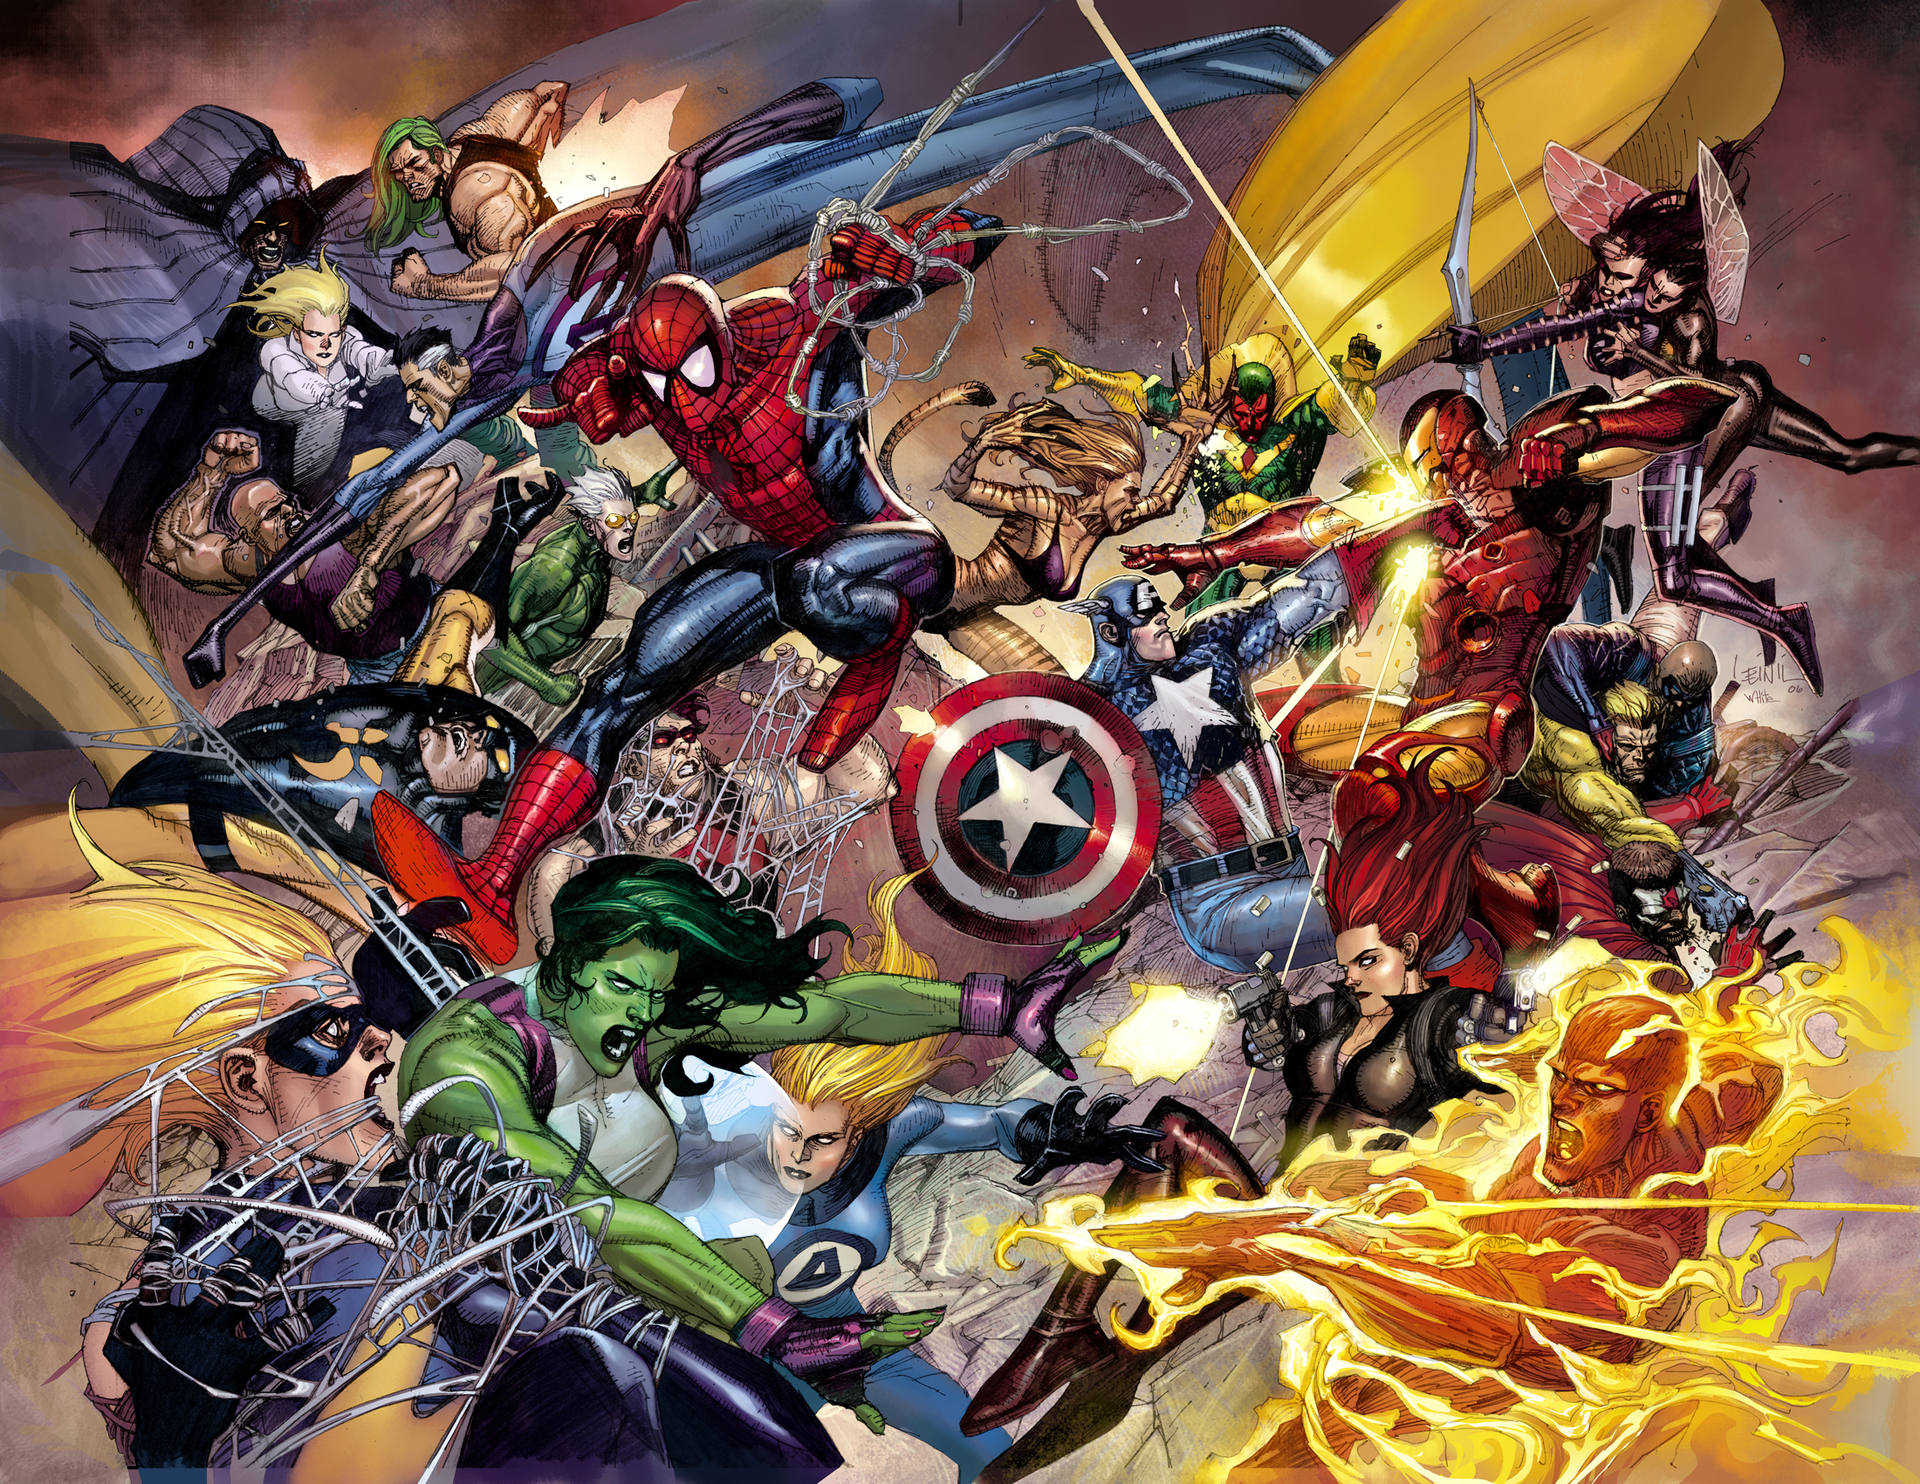 Marvel Civil War Images Battle HD Wallpaper And Background Photos